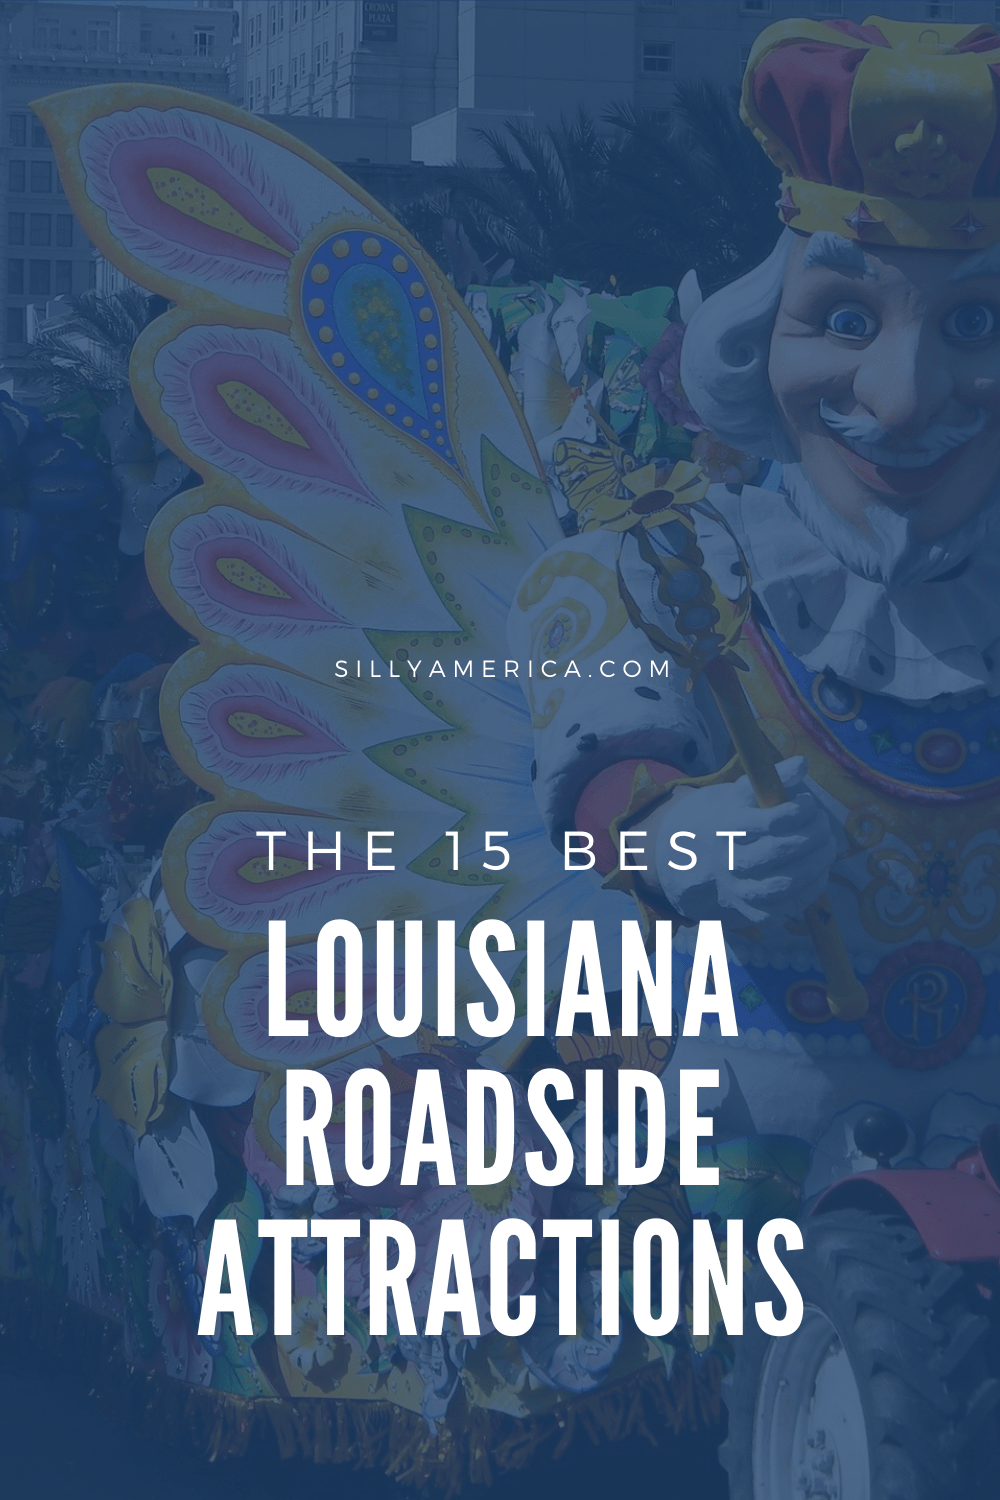 The best Louisiana roadside attractions to visit on a Louisiana road trip. Add these roadside oddities to your travel bucket list, itinerary, or route map! Fun road trip stops for kids or adults heading to New Orleans, Baton Rouge, or more. #LouisianaRoadsideAttractions #LouisianaRoadsideAttraction #RoadsideAttractions #RoadsideAttraction #RoadTrip #LouisianaRoadTrip #LouisianaRoadTripMap #ThingsToDoInLouisiana #LouisianaRoadTripIdeas #NewOrleansRoadTrip